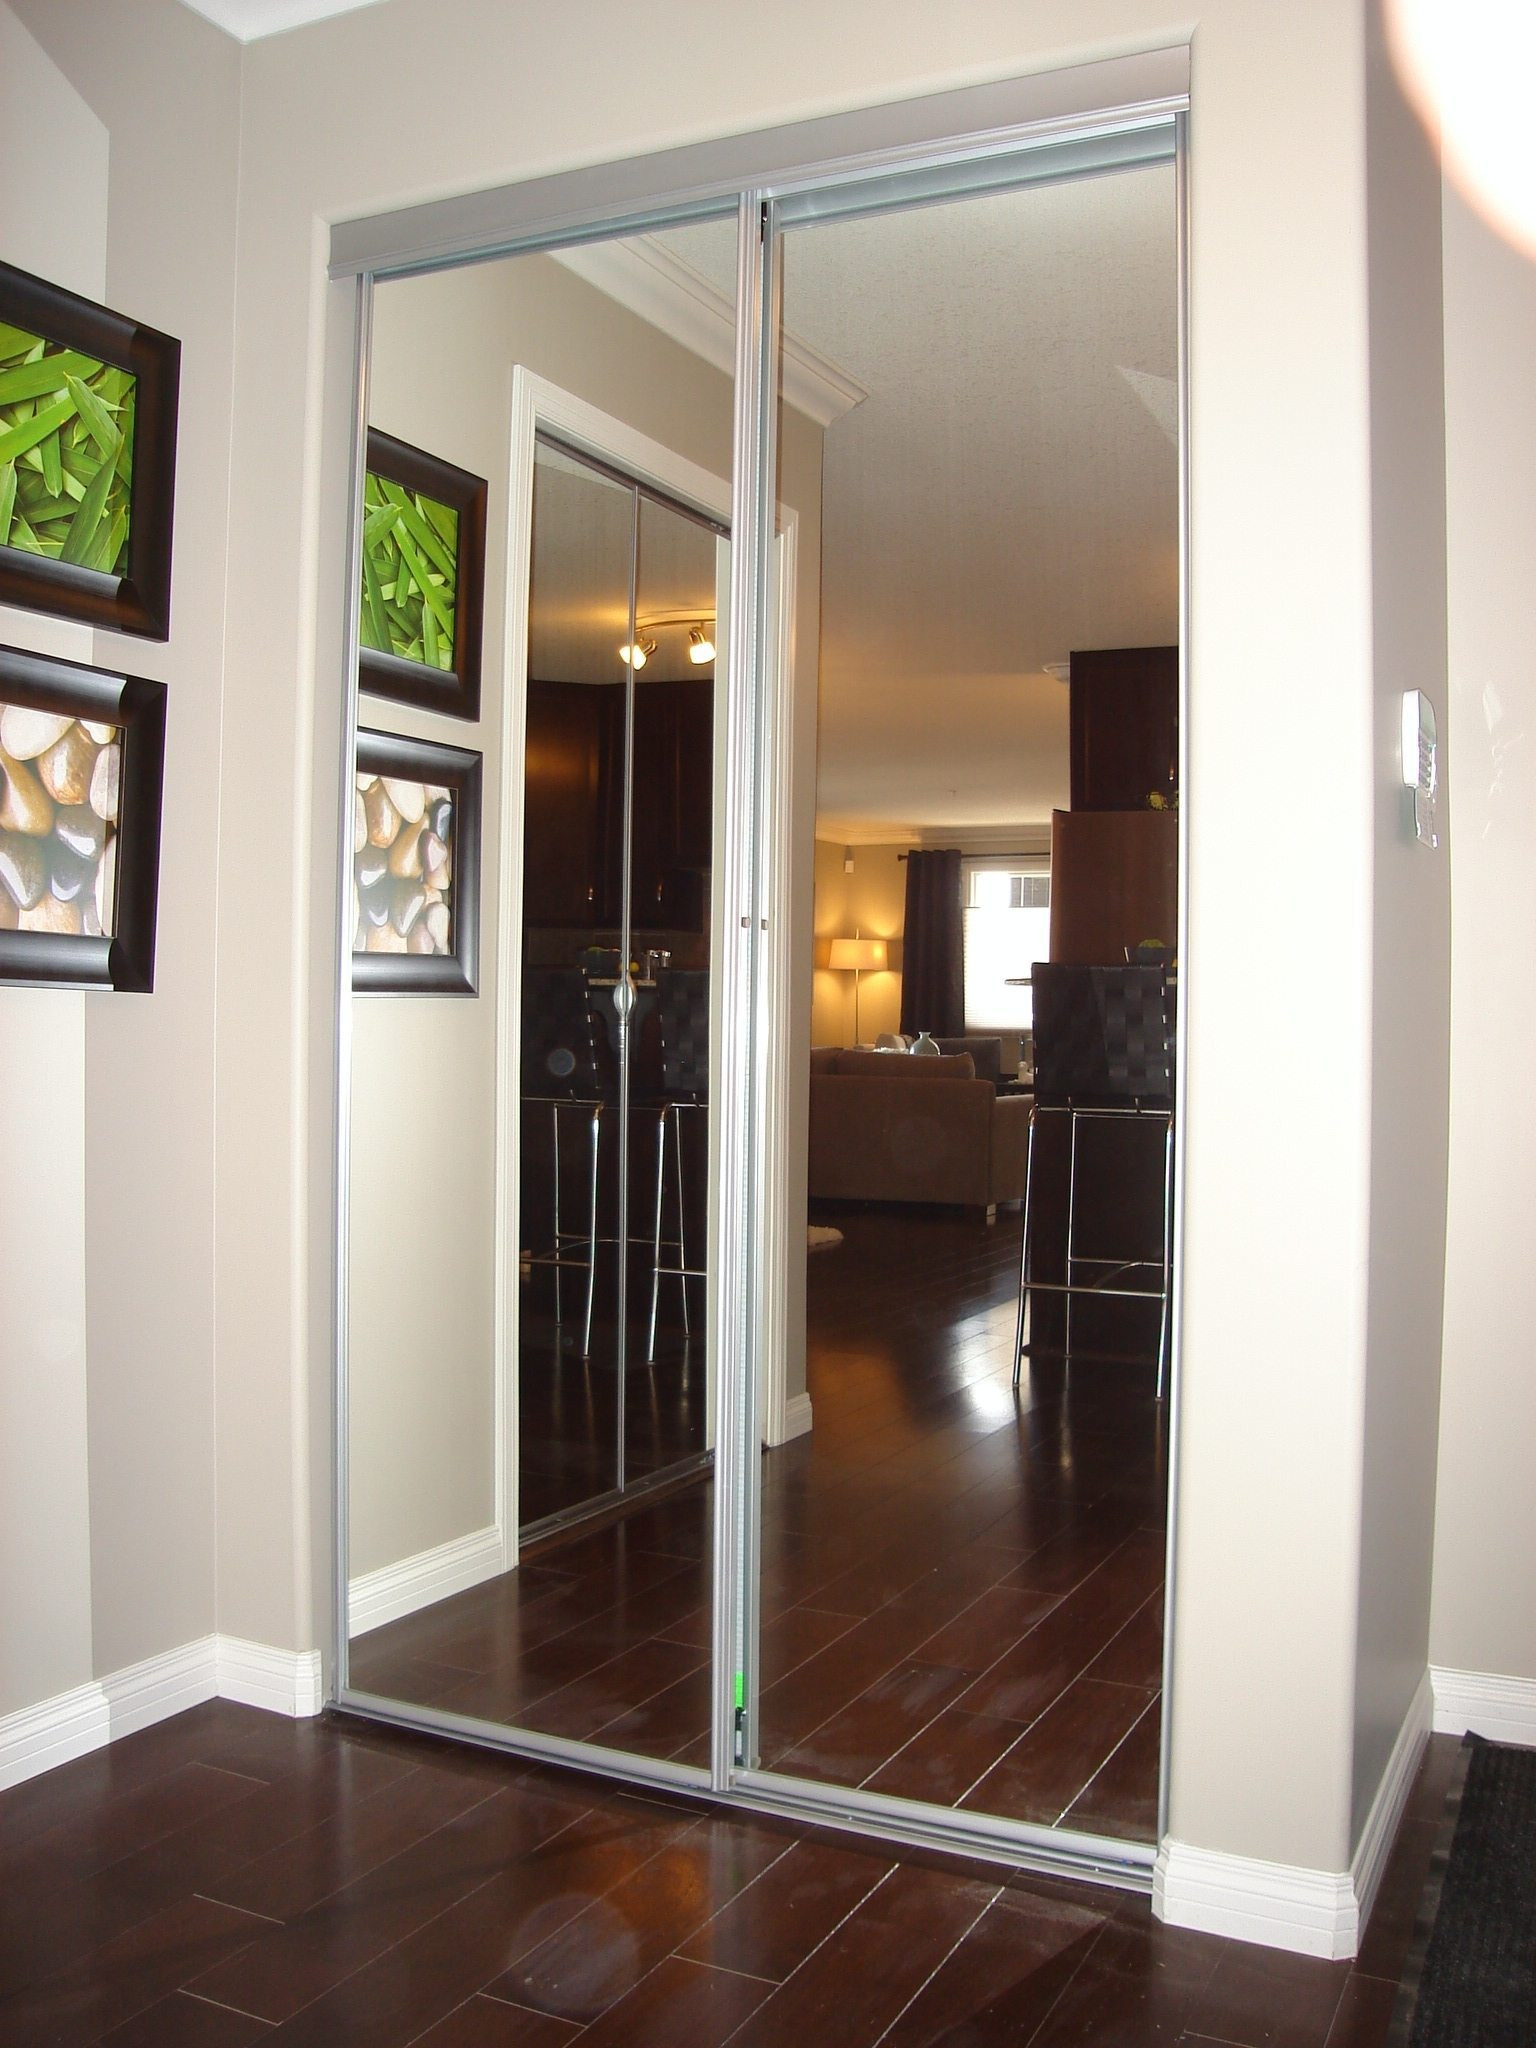 Replacement Cabinet Doors Home Depot Awesome Bi Fold Closet Doors Home Hardware Image Of Bathroom and